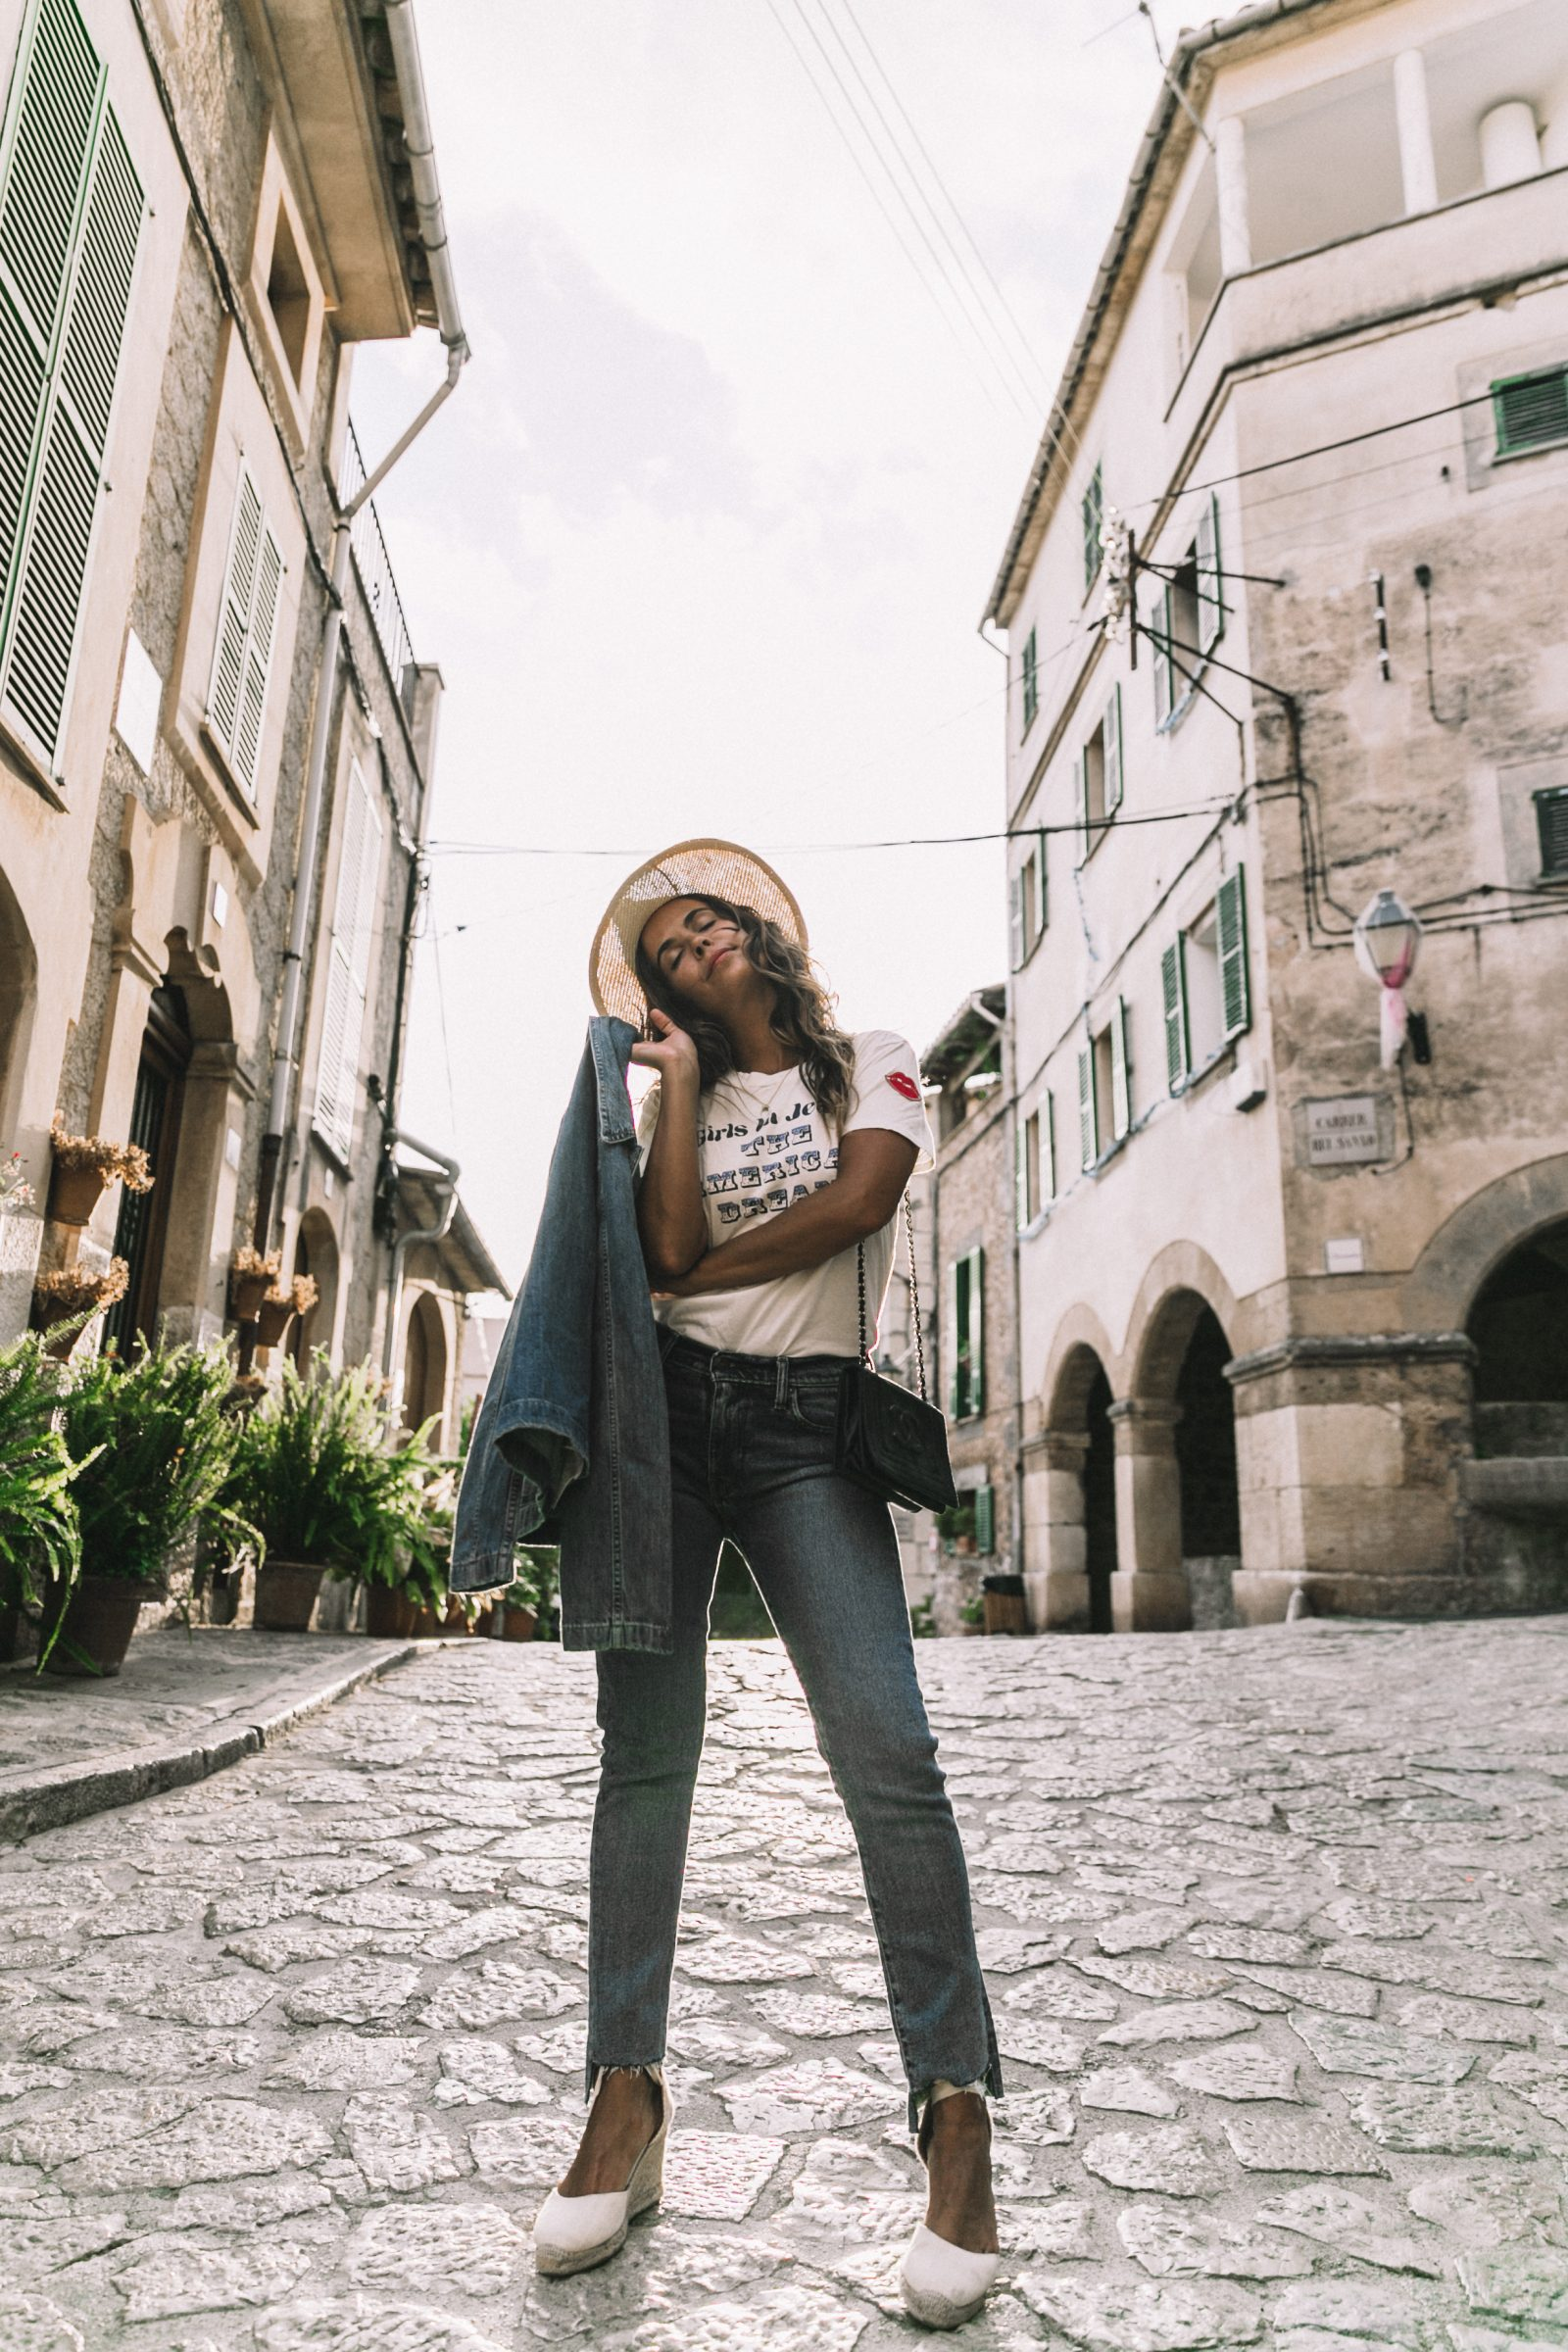 Live_in_Levis-Denim-Who_What_Wear-Levis-Denim-Double_Denim-Menorca-Street_Style-Collage_Vintage-76